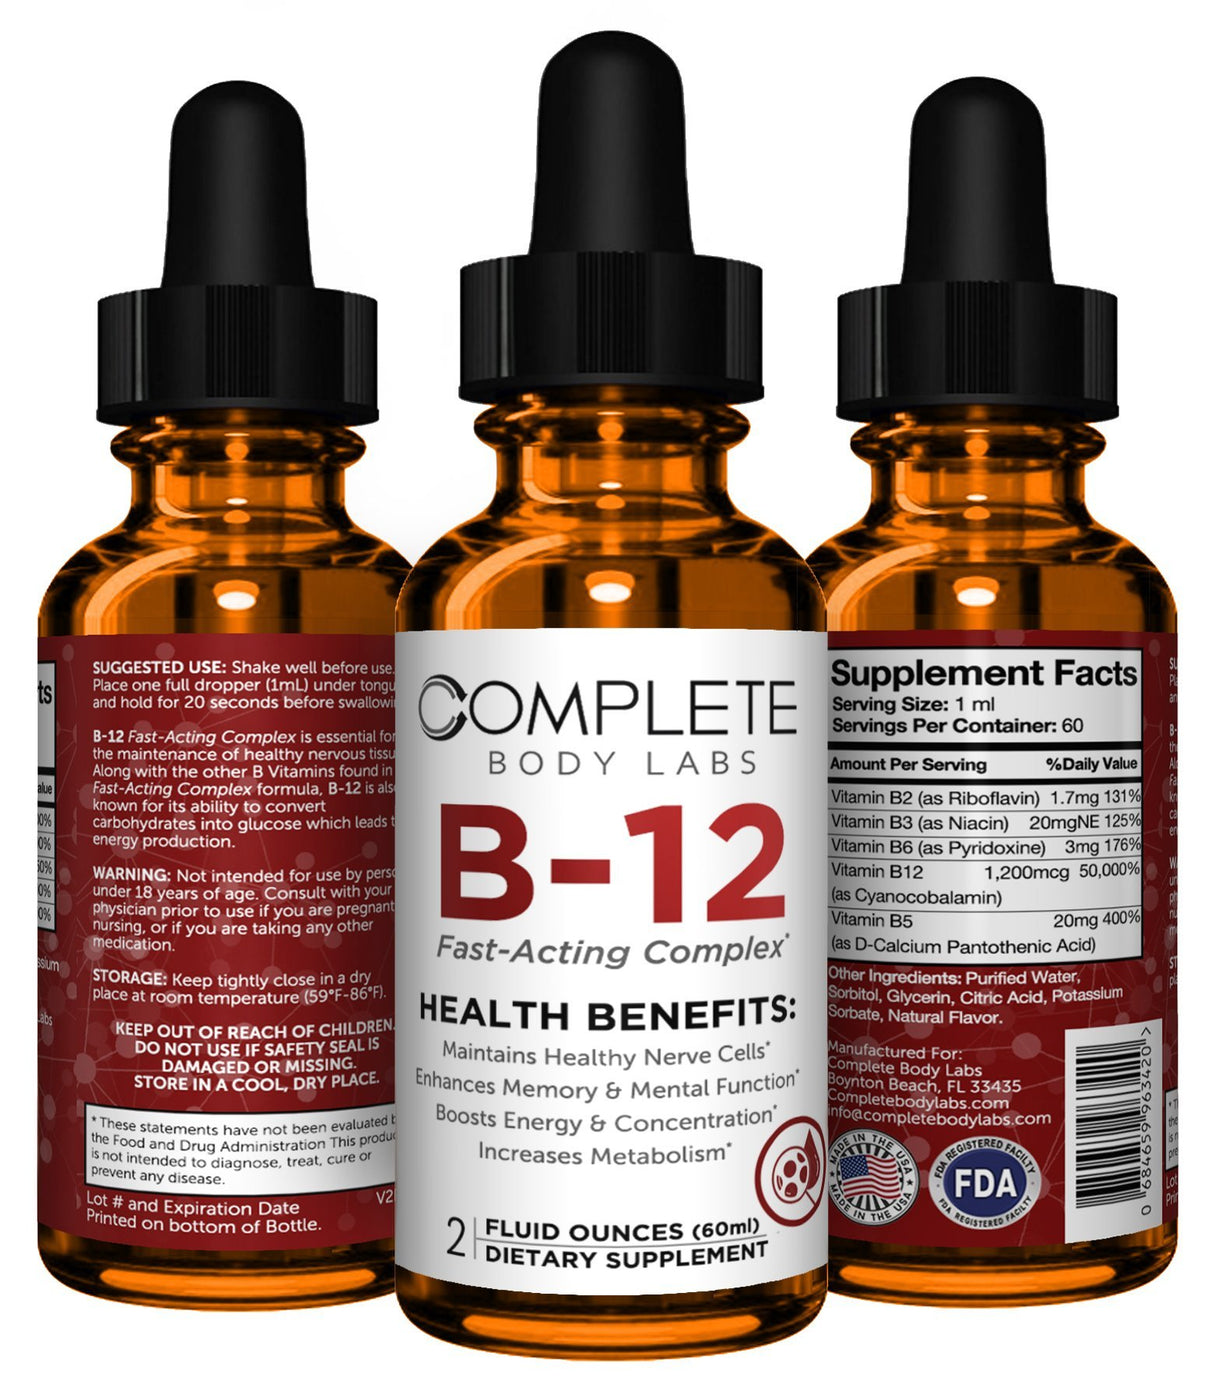 B-12 (Fast-Acting Complex) Complete Body Labs | Probiotics, Nootropics, Brain Supplements, Protein Bars, Workout Supplements, Health Supplements, Omega-3 & Essential Vitamins For Men & Women